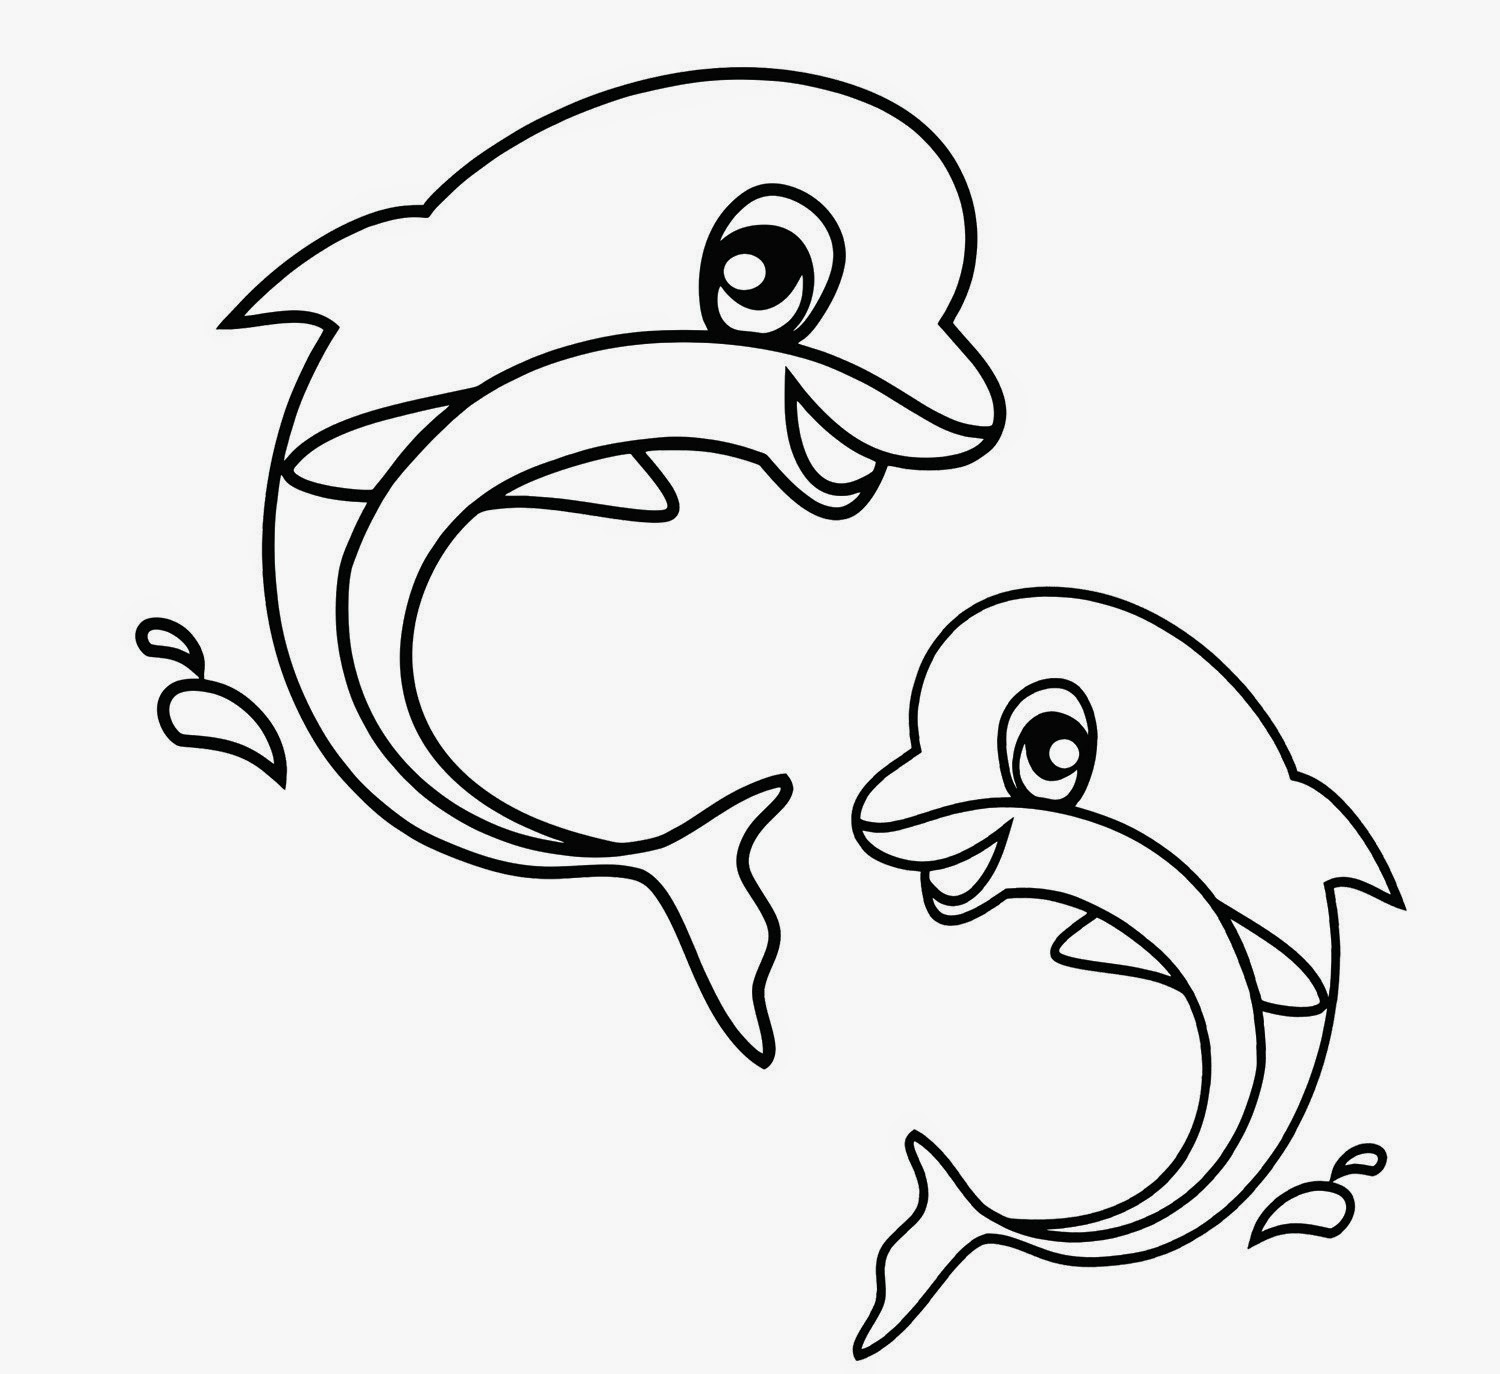 dolphins pictures to color free dolphin clipart printable coloring pages outline dolphins to color pictures